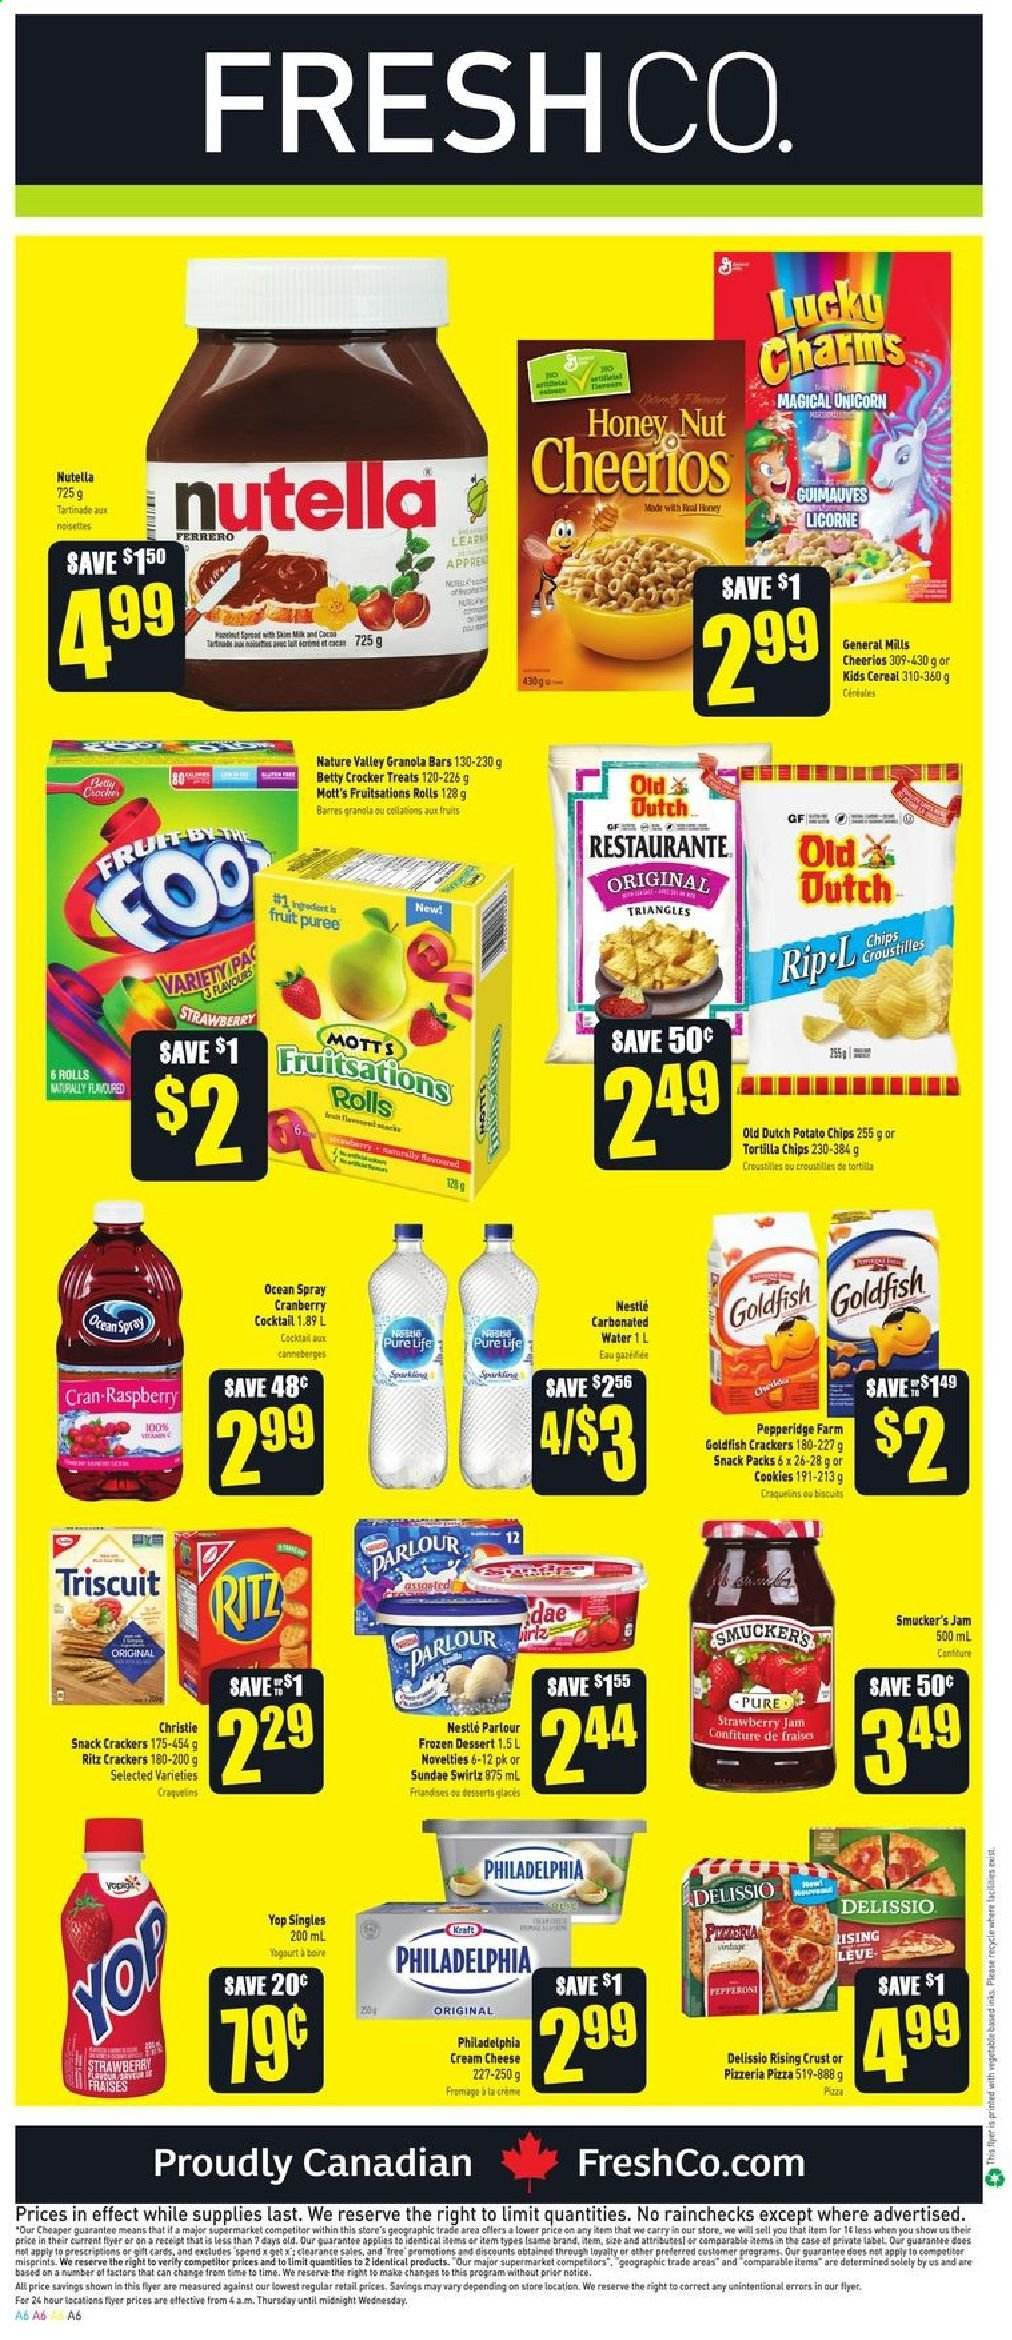 FreshCo. Flyer  - May 23, 2019 - May 29, 2019. Page 6.